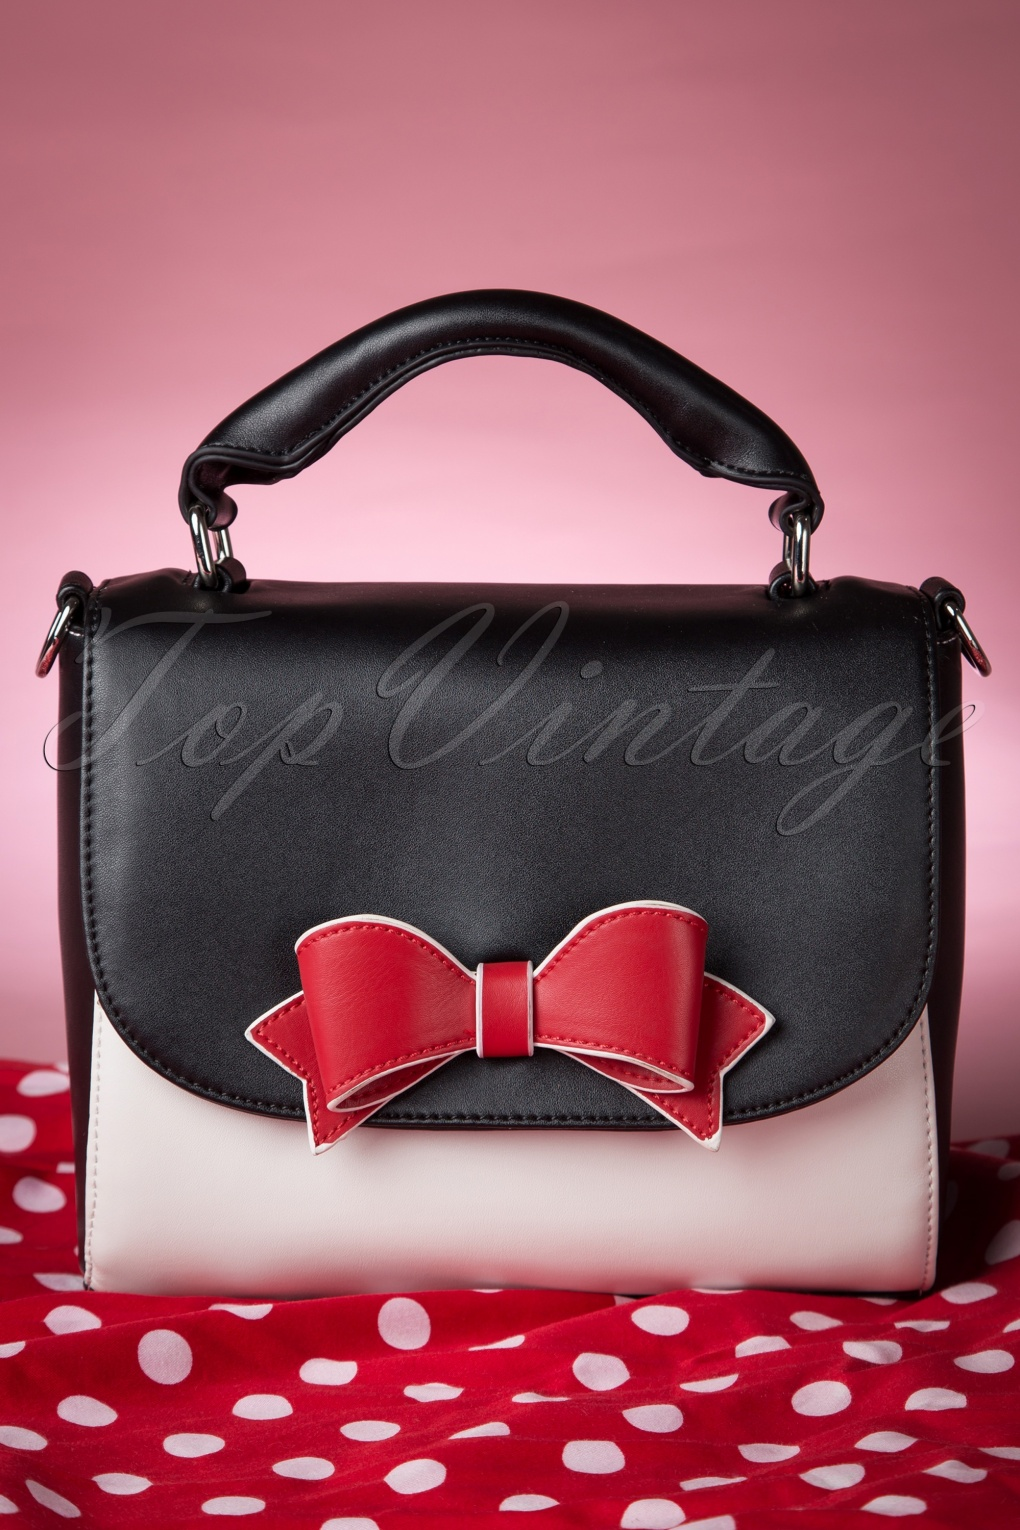 Maßgeschneiderte Kleider 50s Delux Red Bow Bag In Black And White